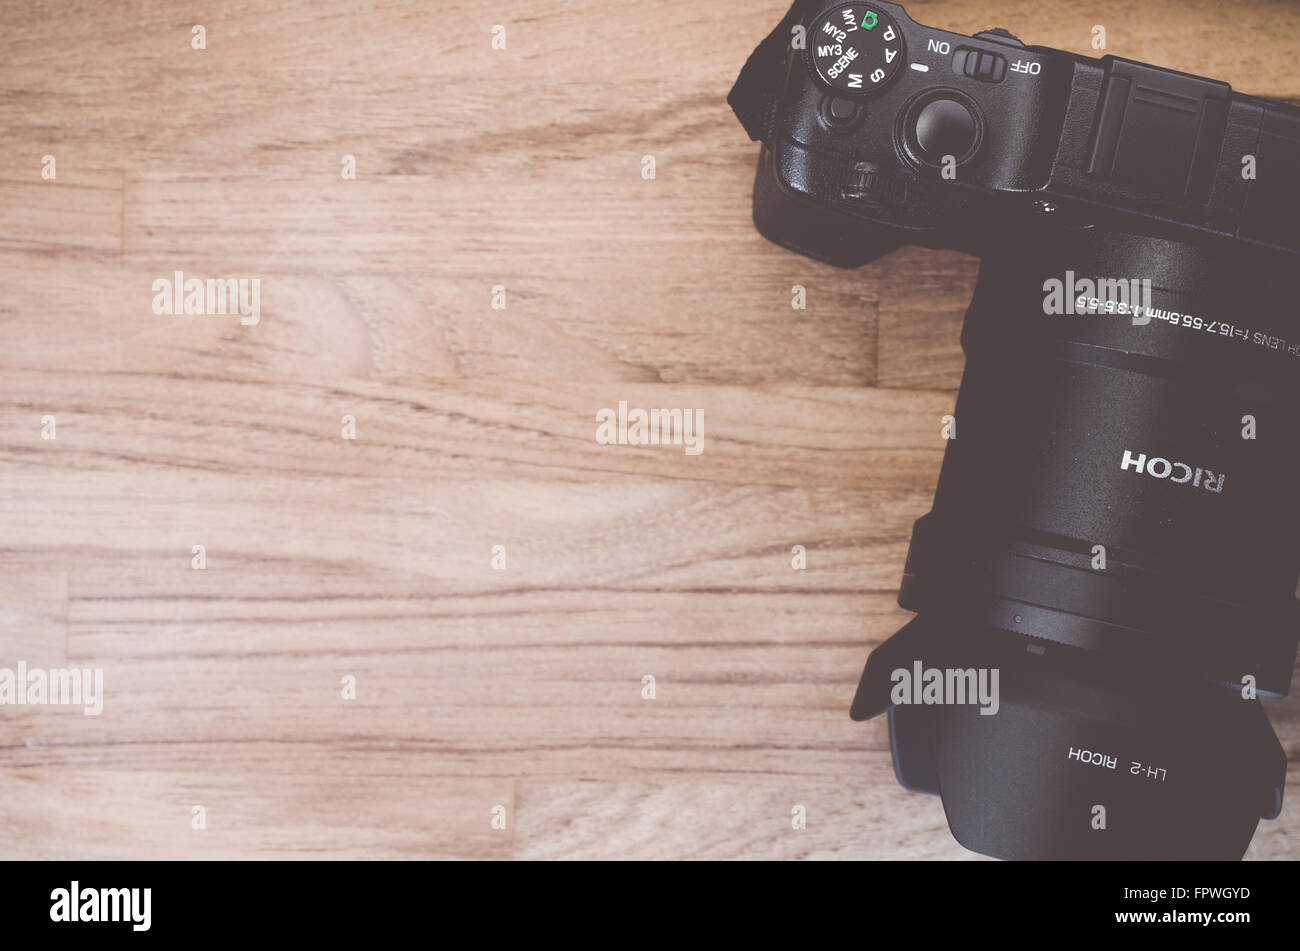 Aps C Stock Photos Images Alamy Ricoh Strap St 3 W Gxr A16 Camera Body And Zoom Lens Photography Gear On A